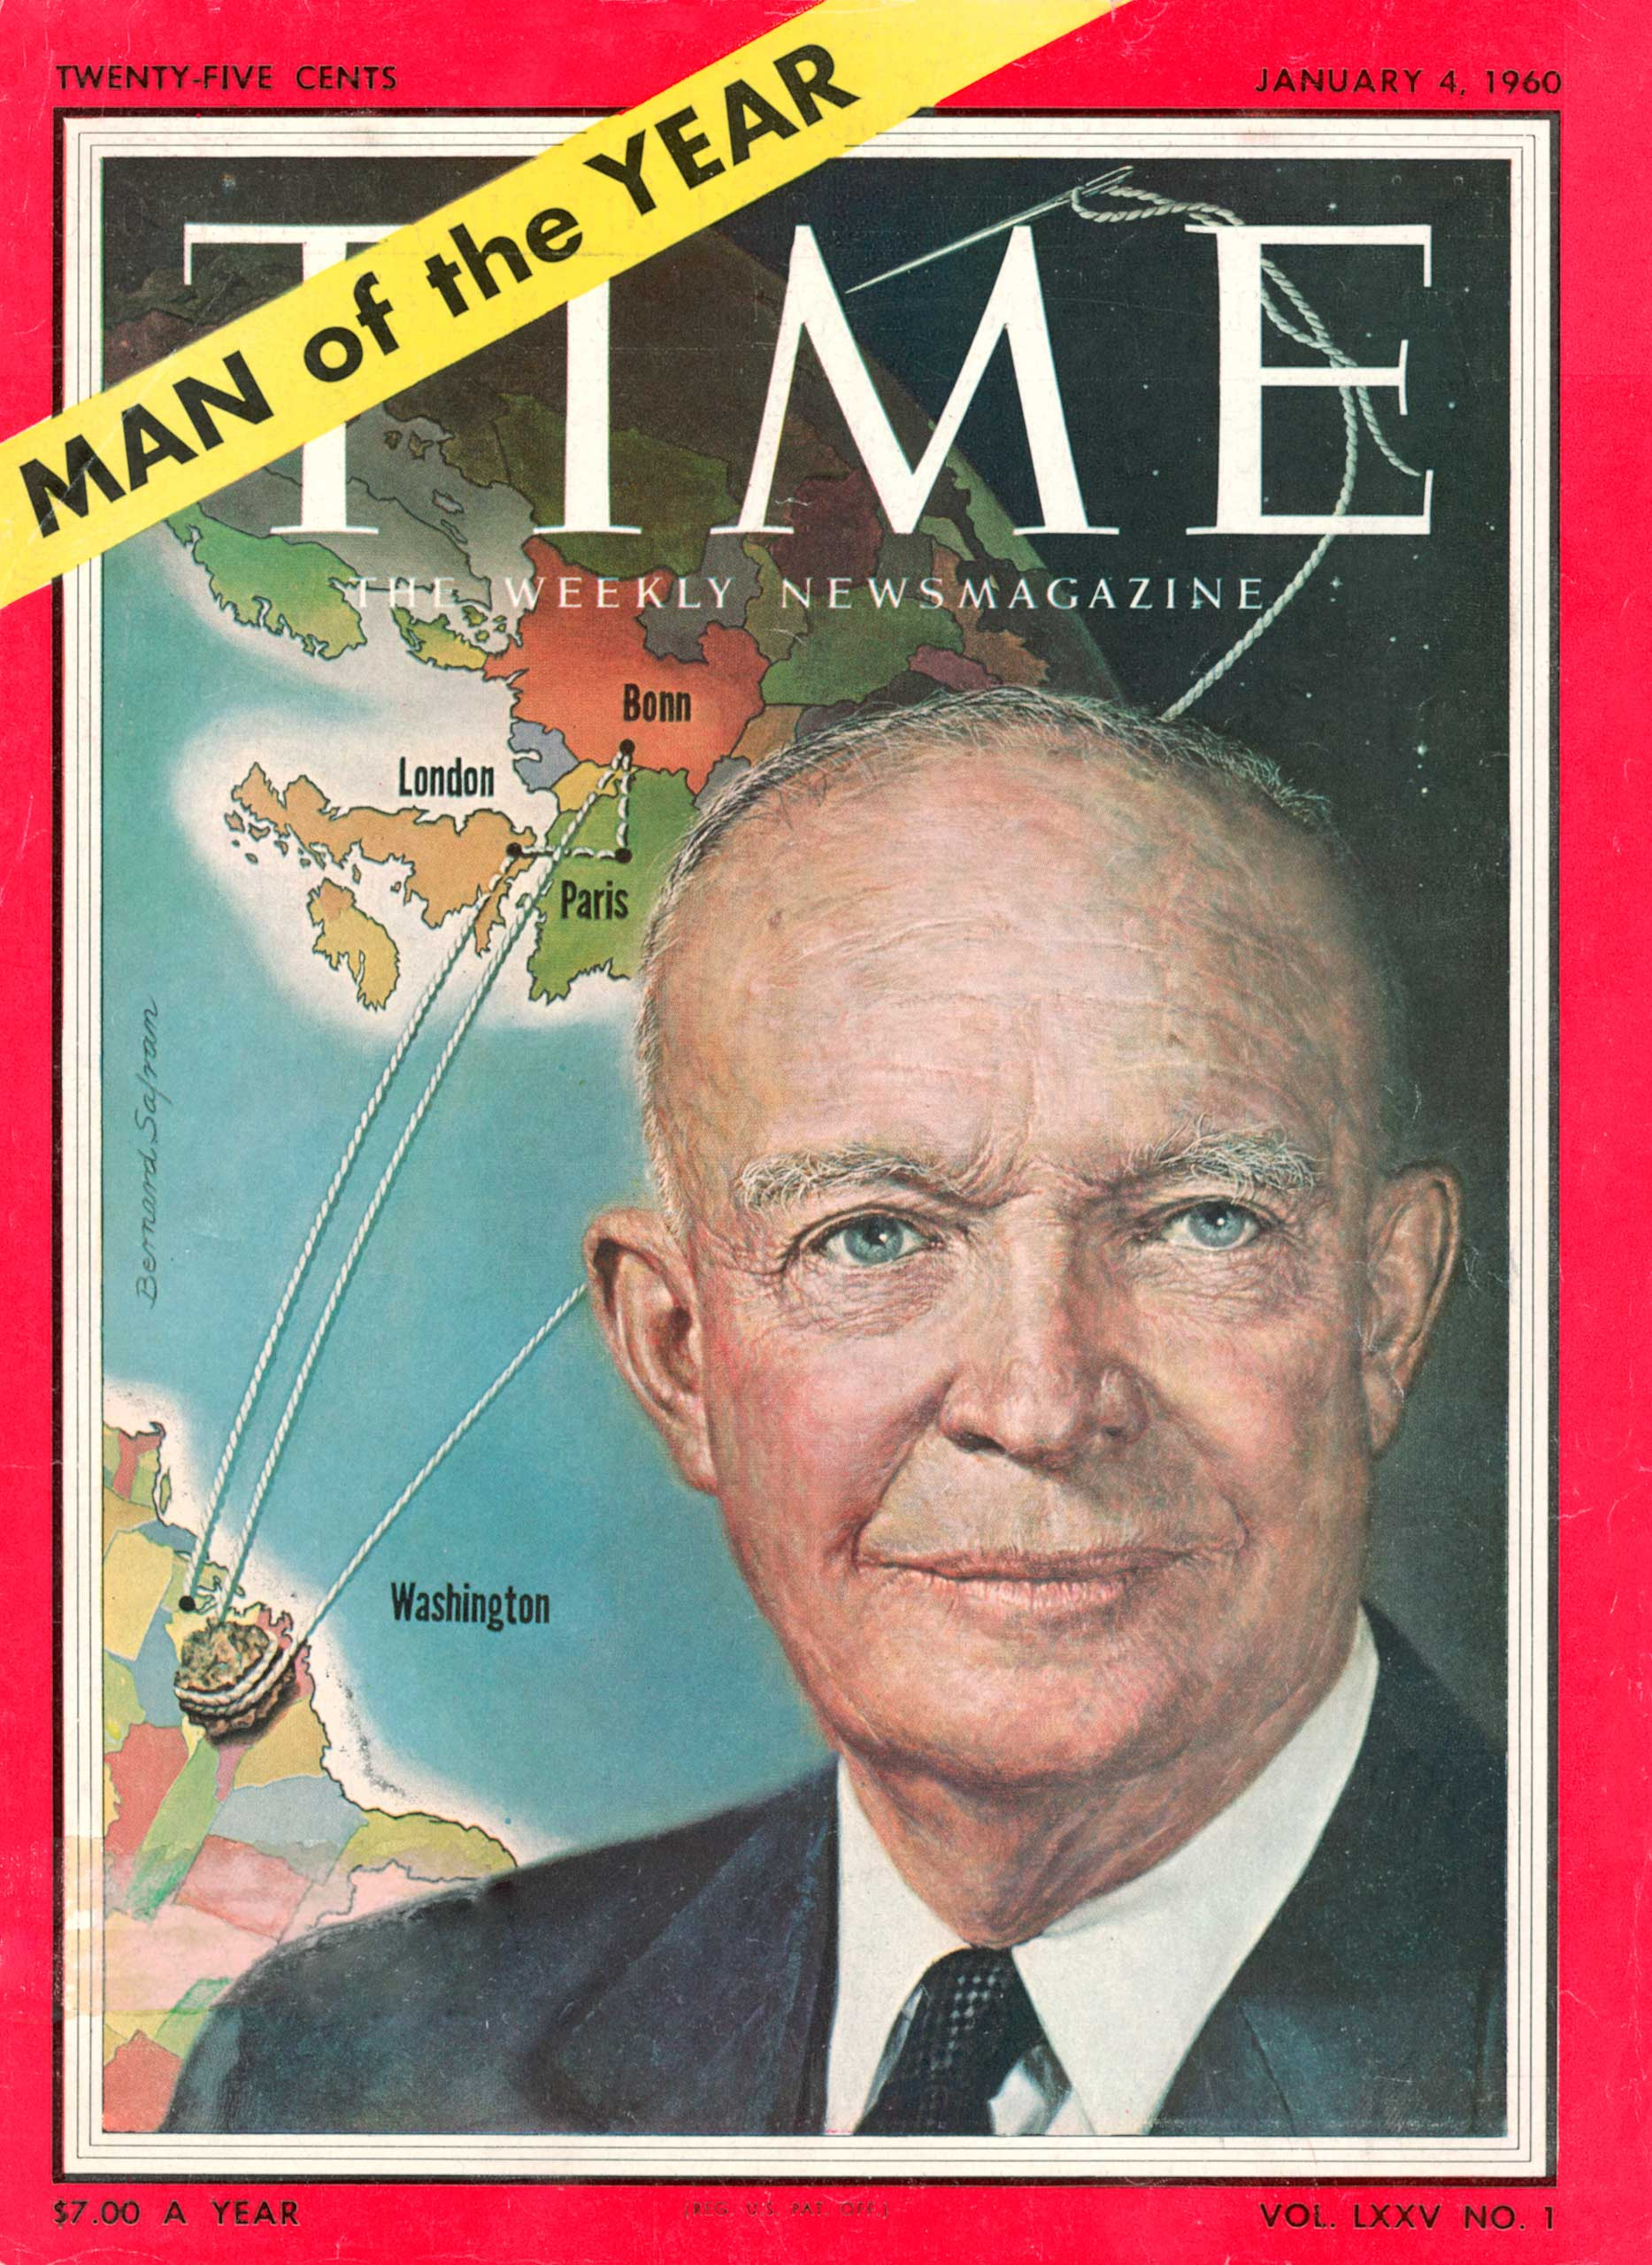 1959: President Dwight D. Eisenhower